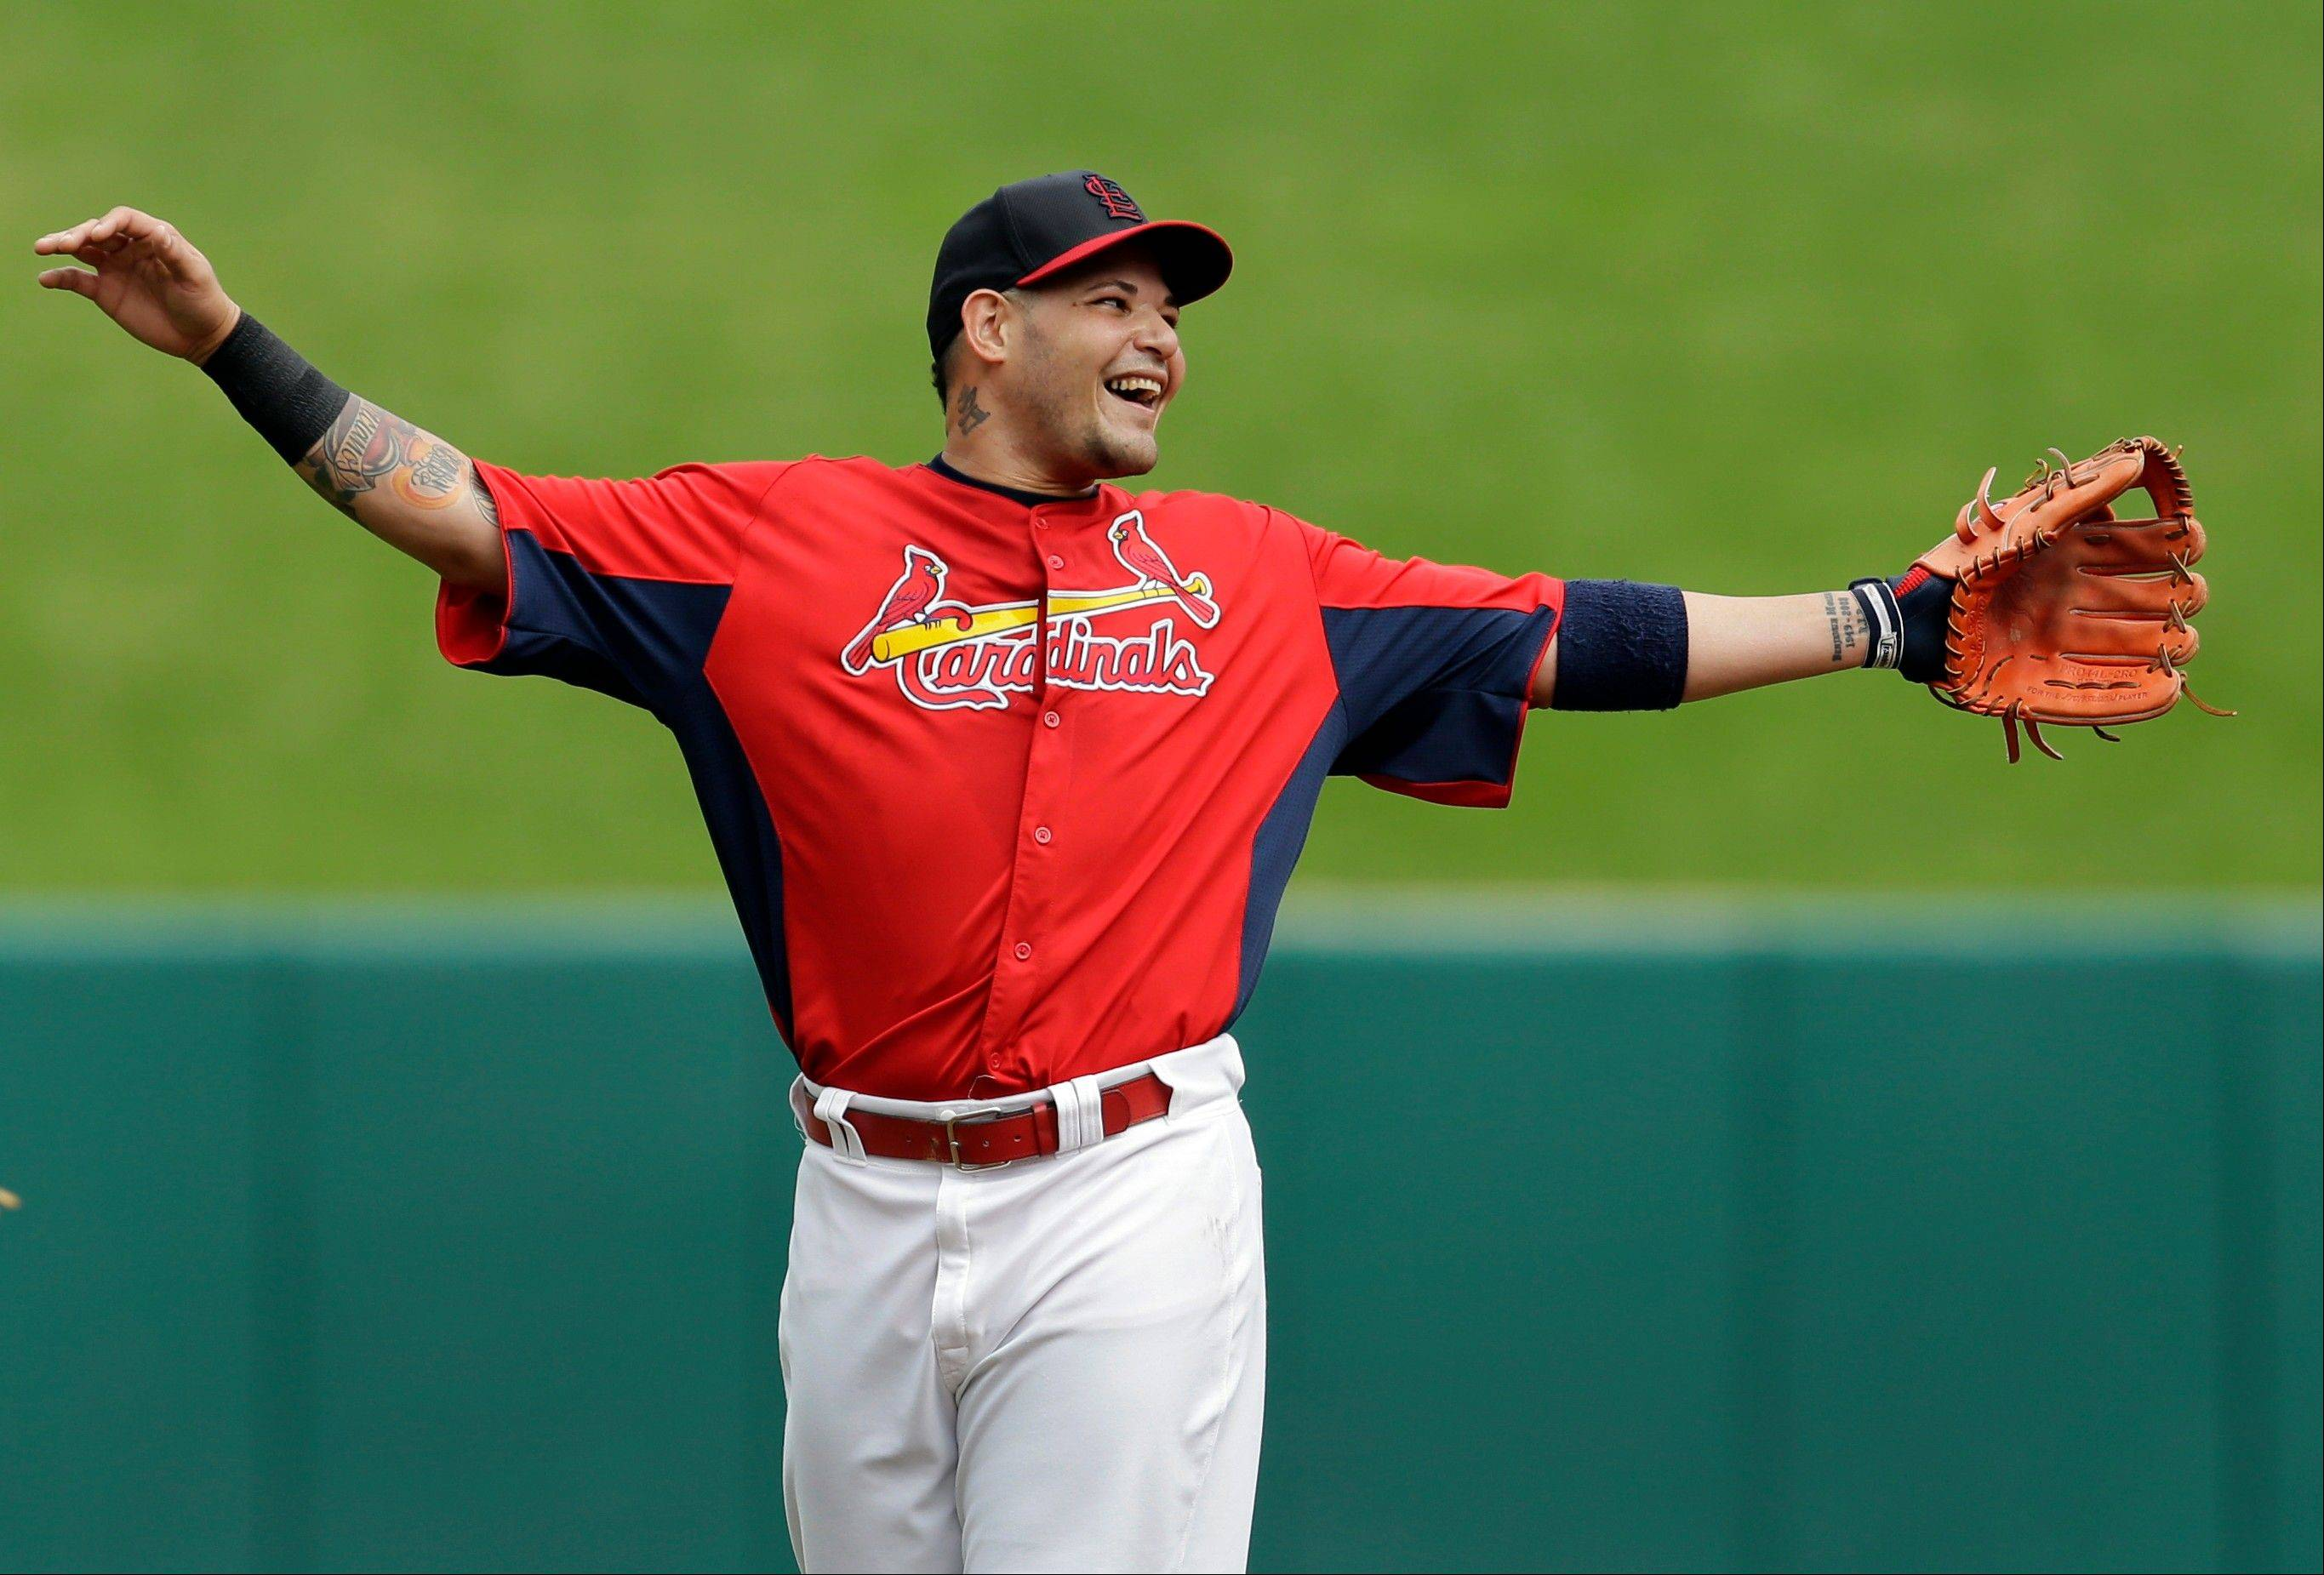 St. Louis Cardinals catcher Yadier Molina laughs during baseball practice Tuesday in St. Louis. The Cardinals are set to host Game 1 of the NL division series on Thursday, gainst the winner of Tuesday's wild-card game between the Cincinnati Reds and Pittsburgh Pirates.